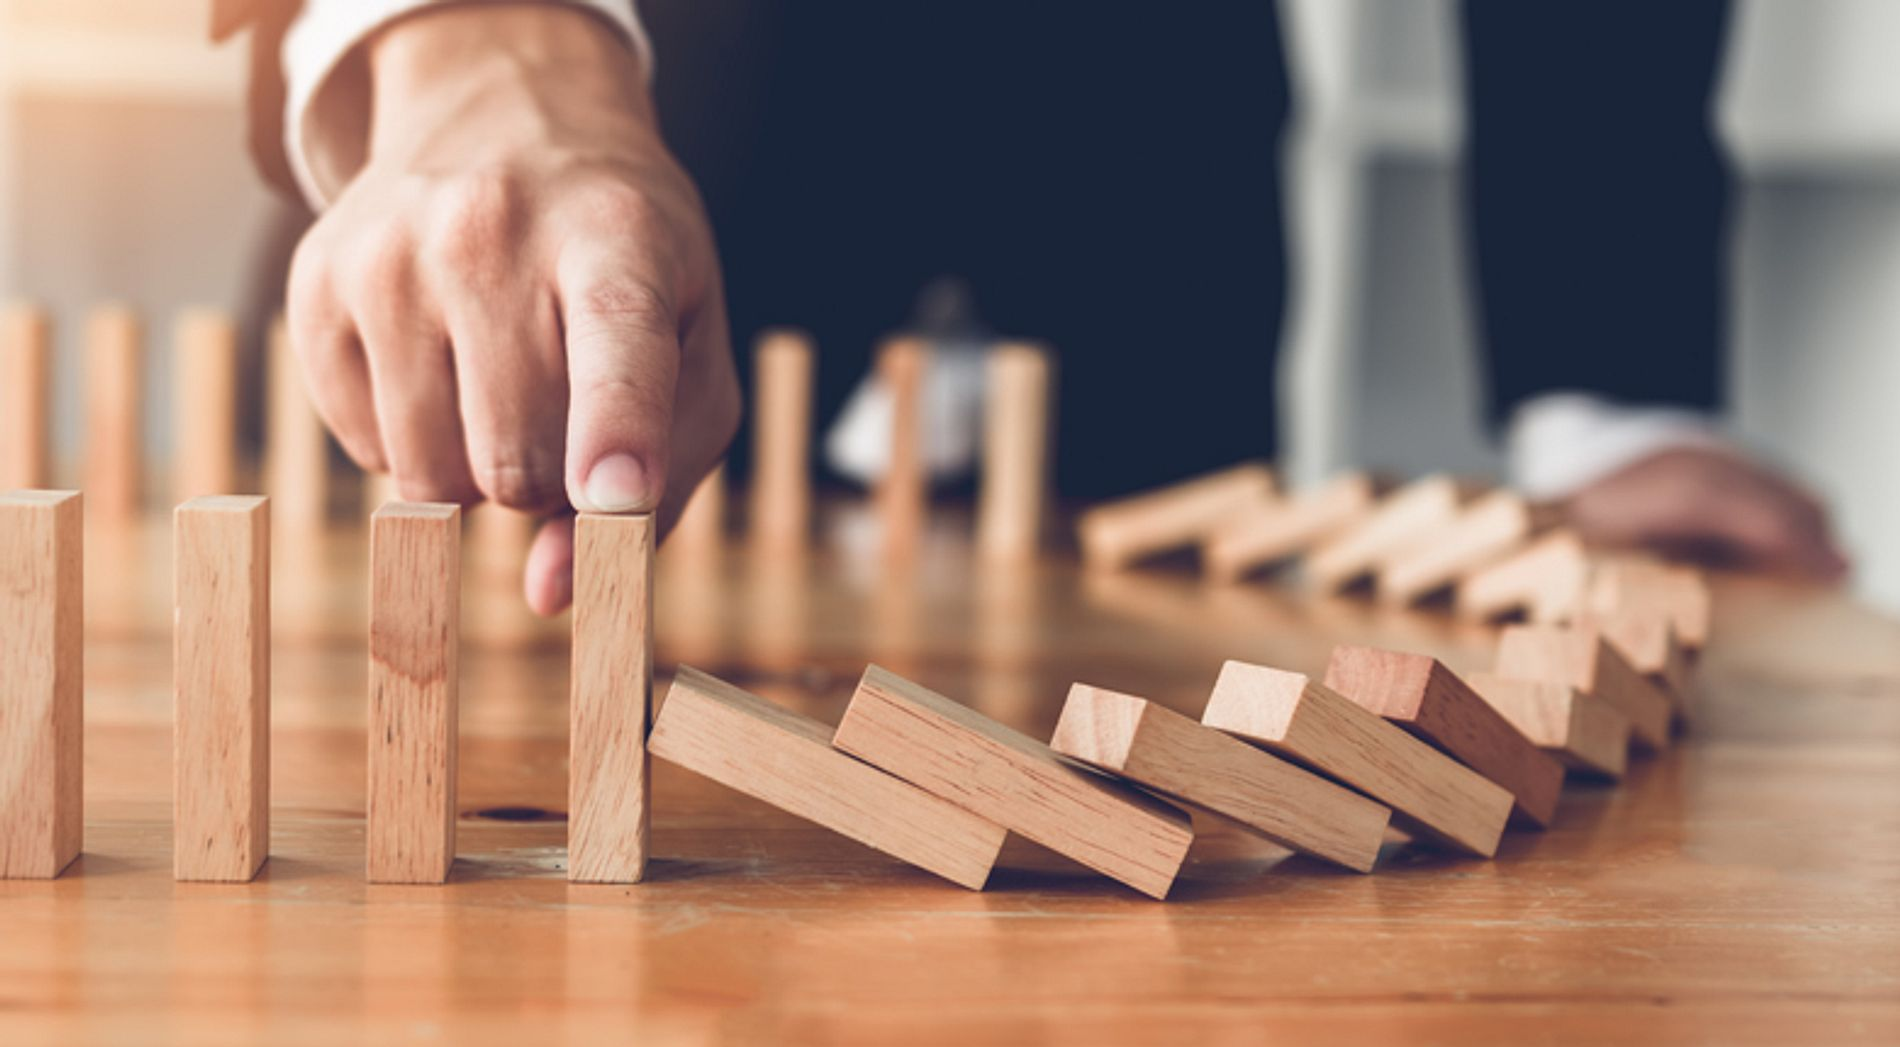 hand stopping dominoes from falling